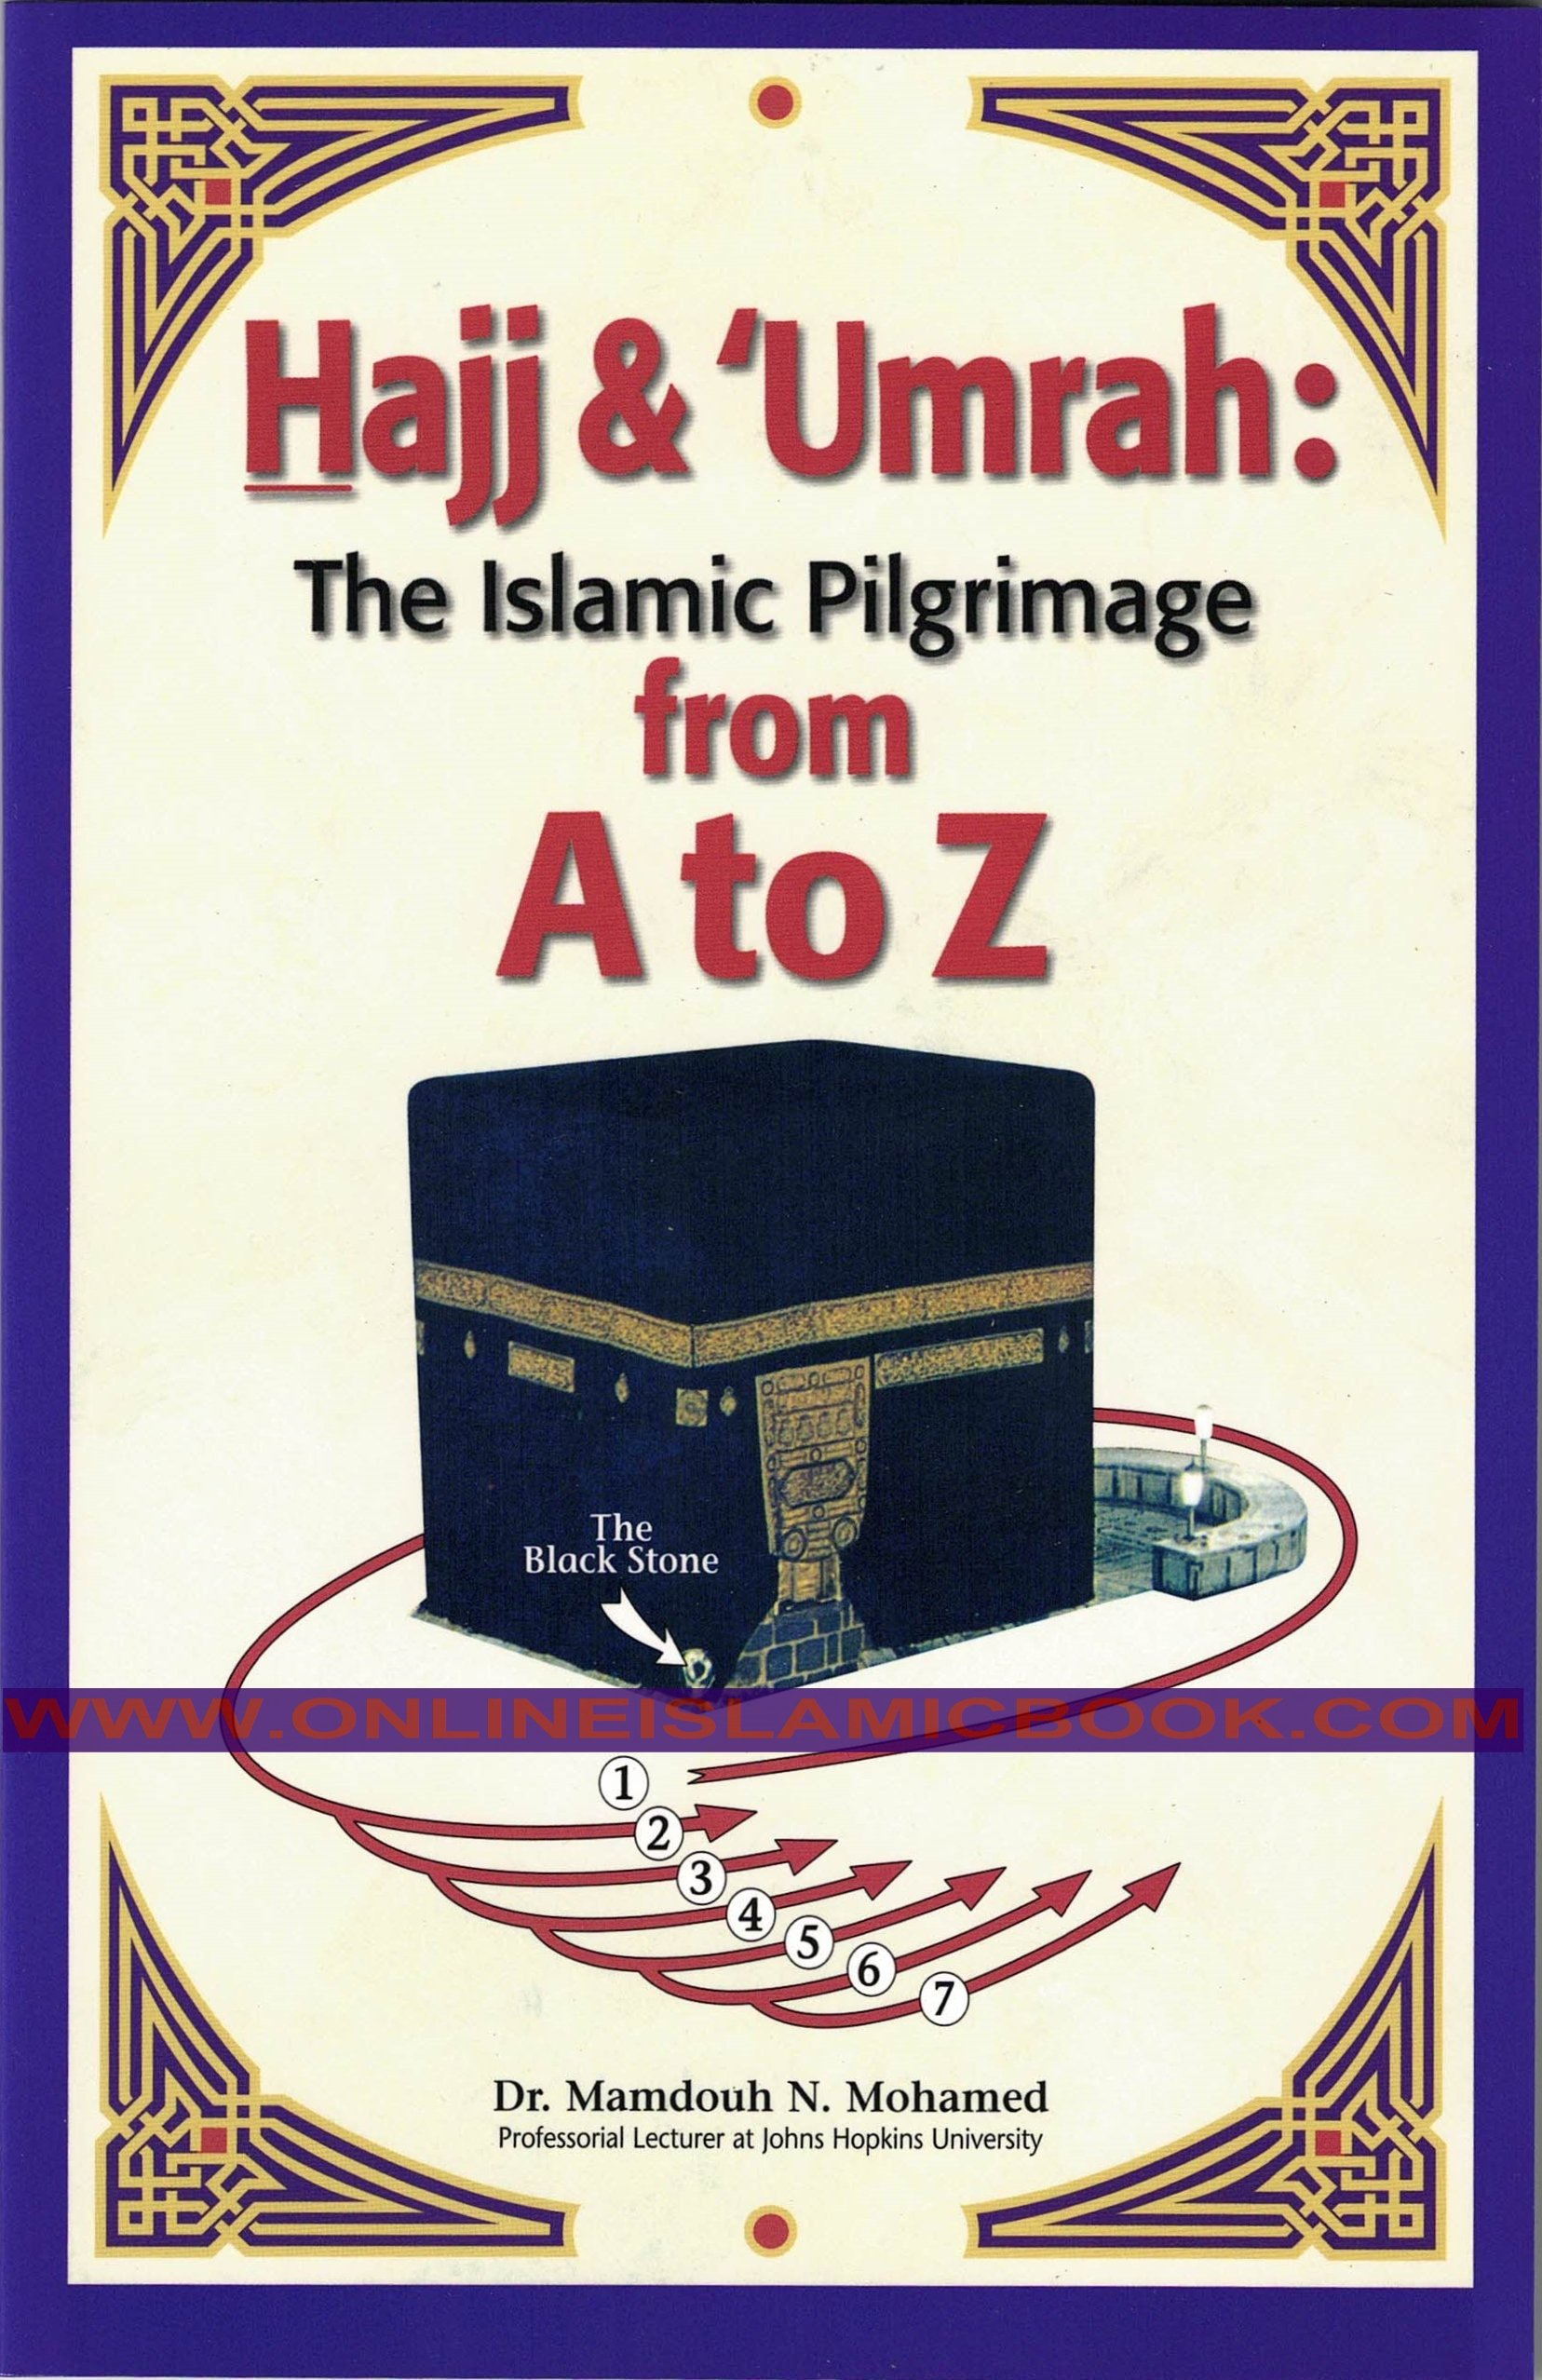 Hajj & Umrah: The Islamic Pilgrimage from A to Z: Mamdouh N